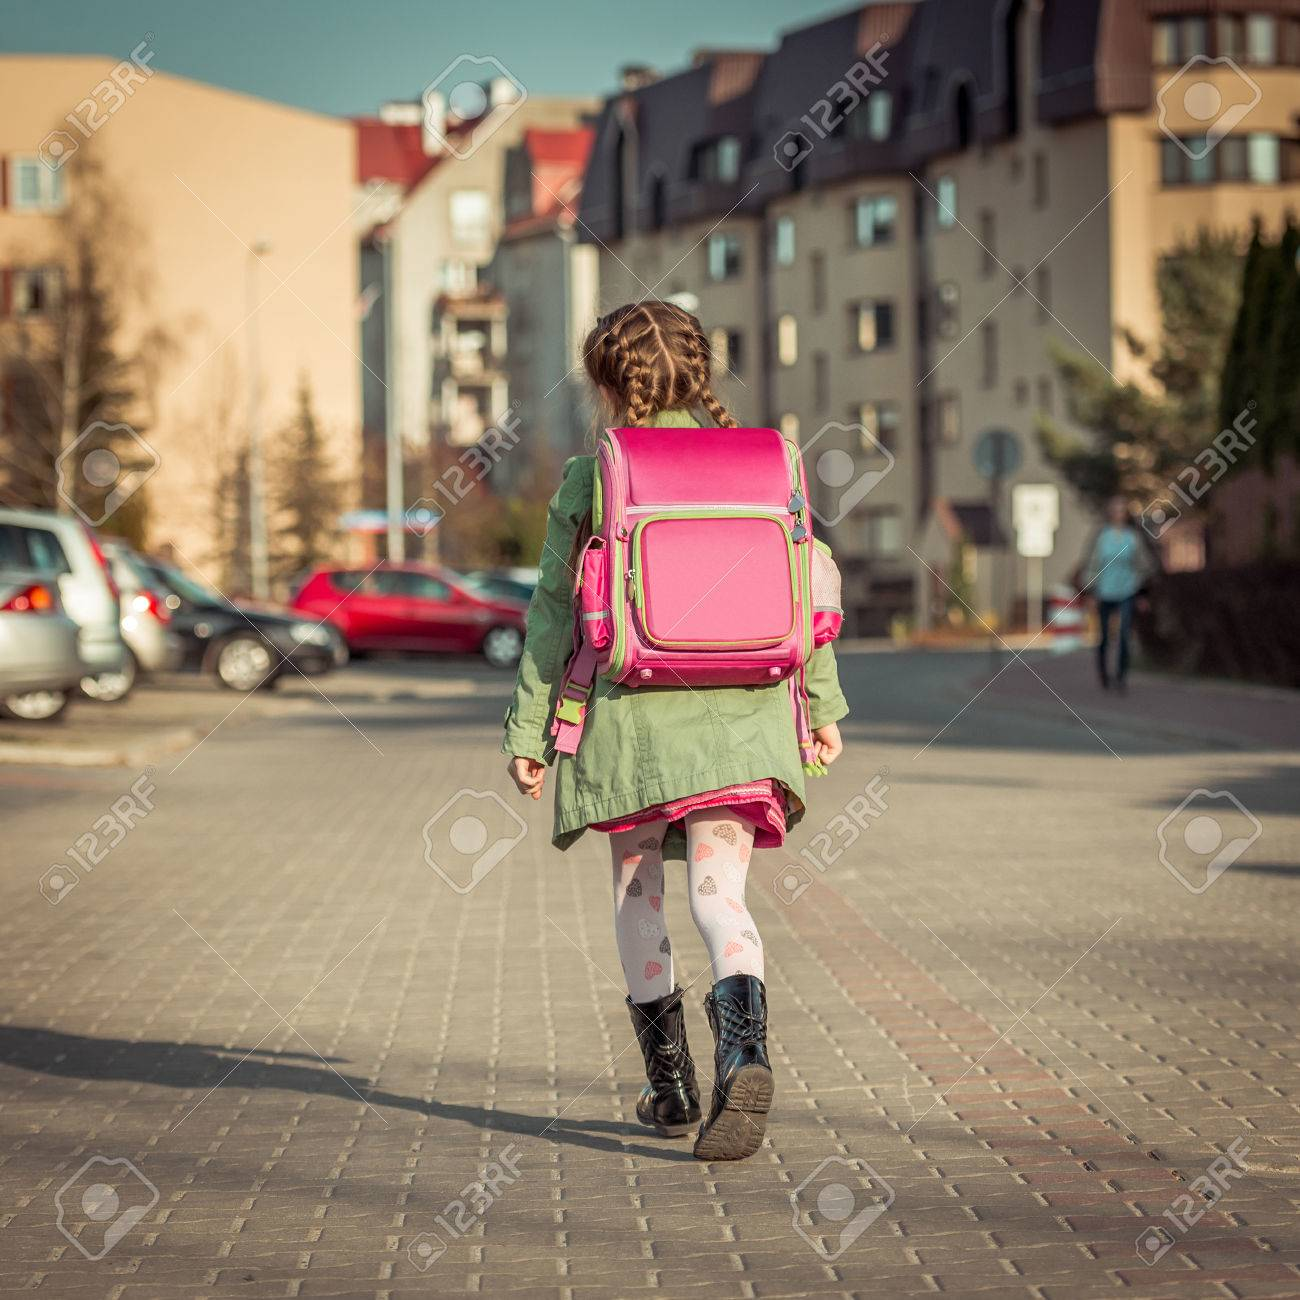 little girl with a backpack going to school - 43021404